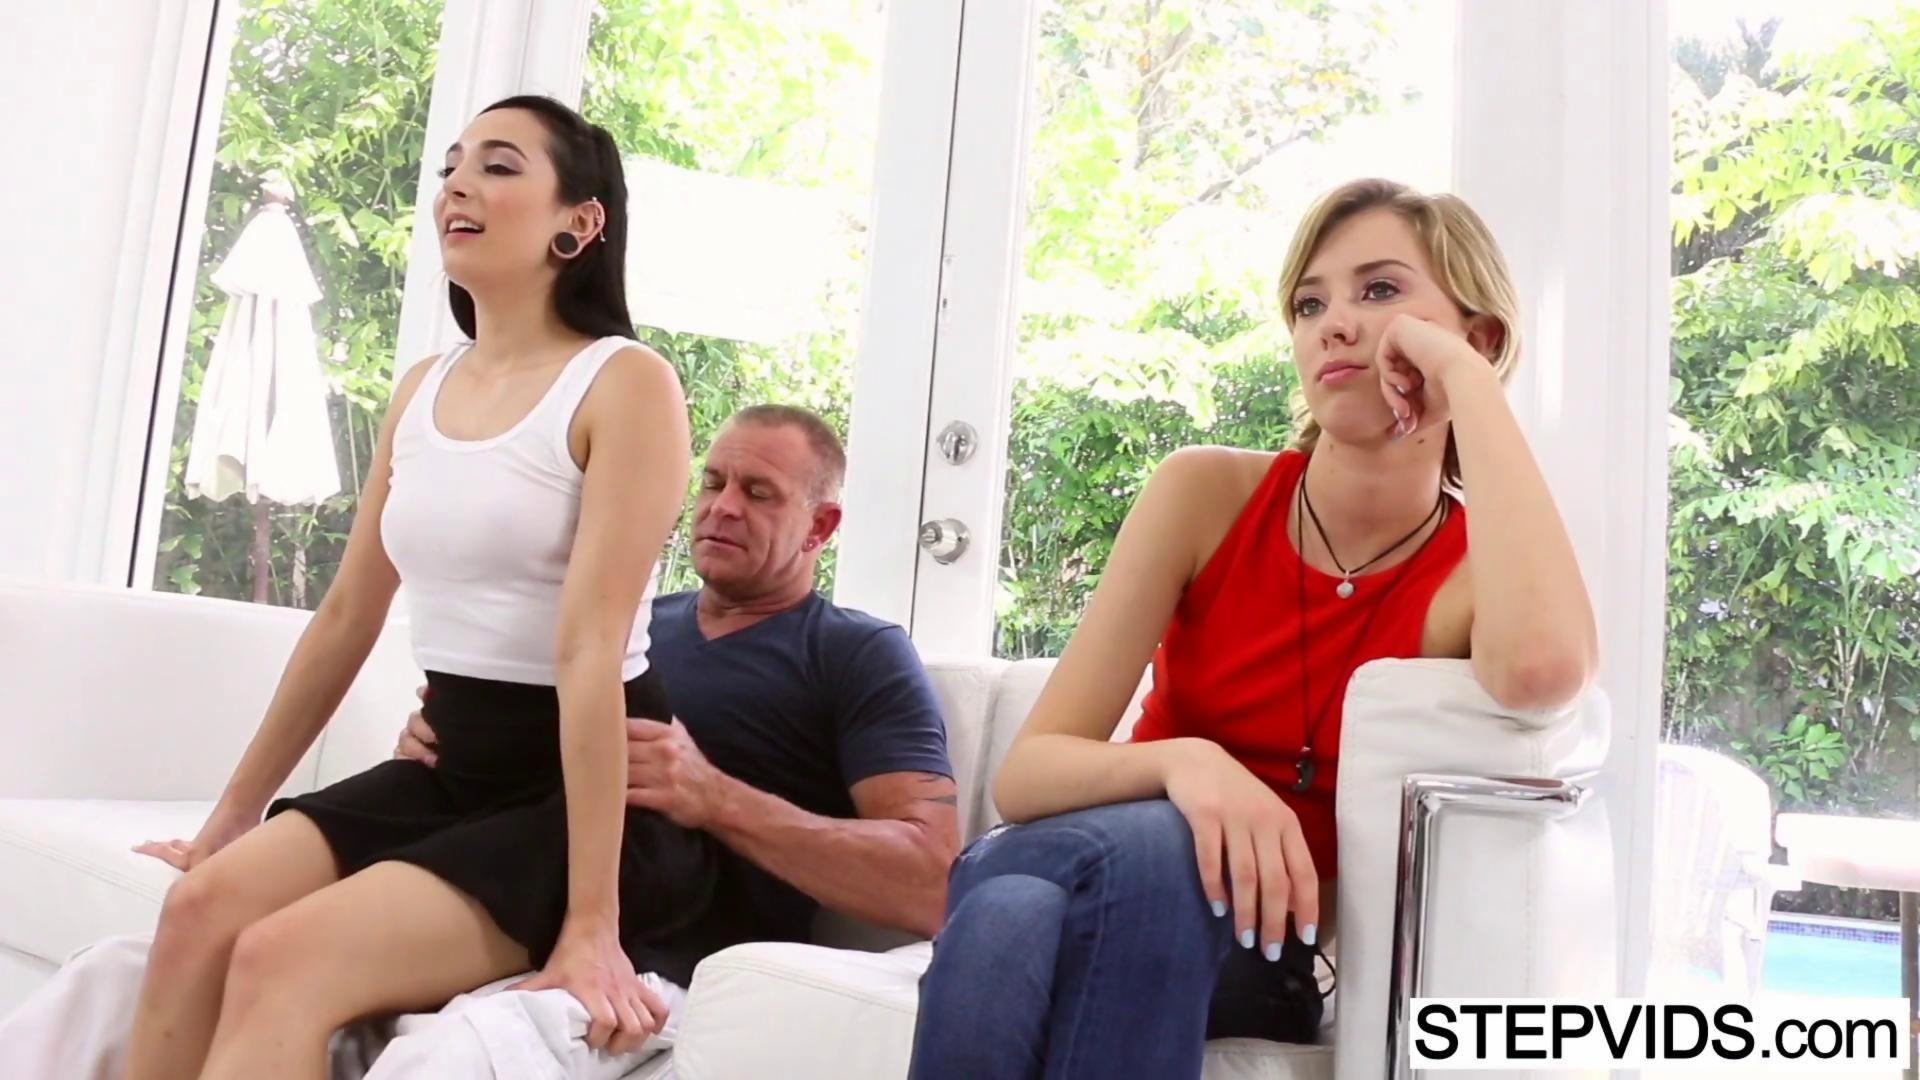 Mom and daughter duo Dana Vespoli and Janice Griffith suck a dick together № 635717  скачать